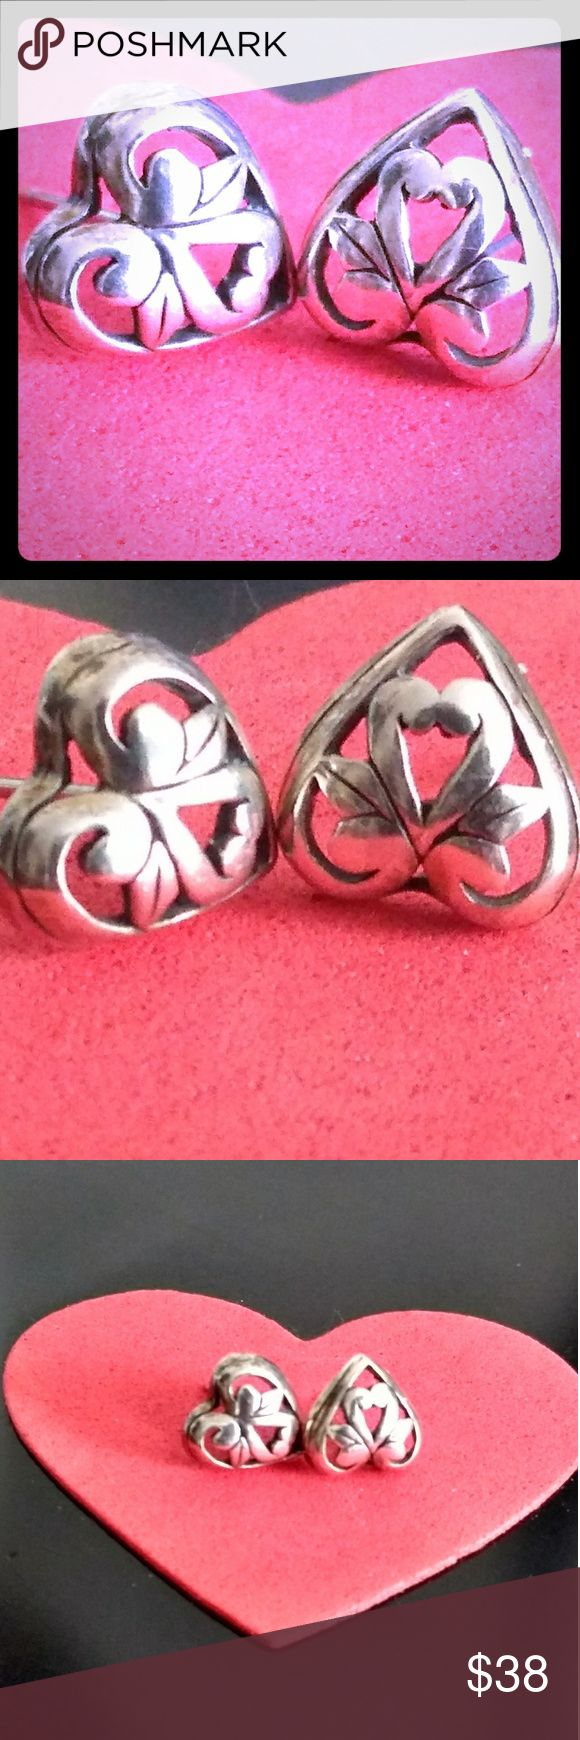 ❤️Vintage Adorable Lil Abstract 925-SS Hearts ❤️❤️REDUCED❤️❤️ 🎀Bundle For Further Discount🎀 Adorable vintage solid sterling silver abstract heart earrings. At first glance the design inside appears to be a bow but when looking at em upside-down they also look like lil heart shaped flowers or even swans.. Very unique and cool! These are vintage and do show some wear and oxidation which, imo just adds to the character/uniqueness. Feel free to ask any questions💕 *Reasonable* offers welcomed…